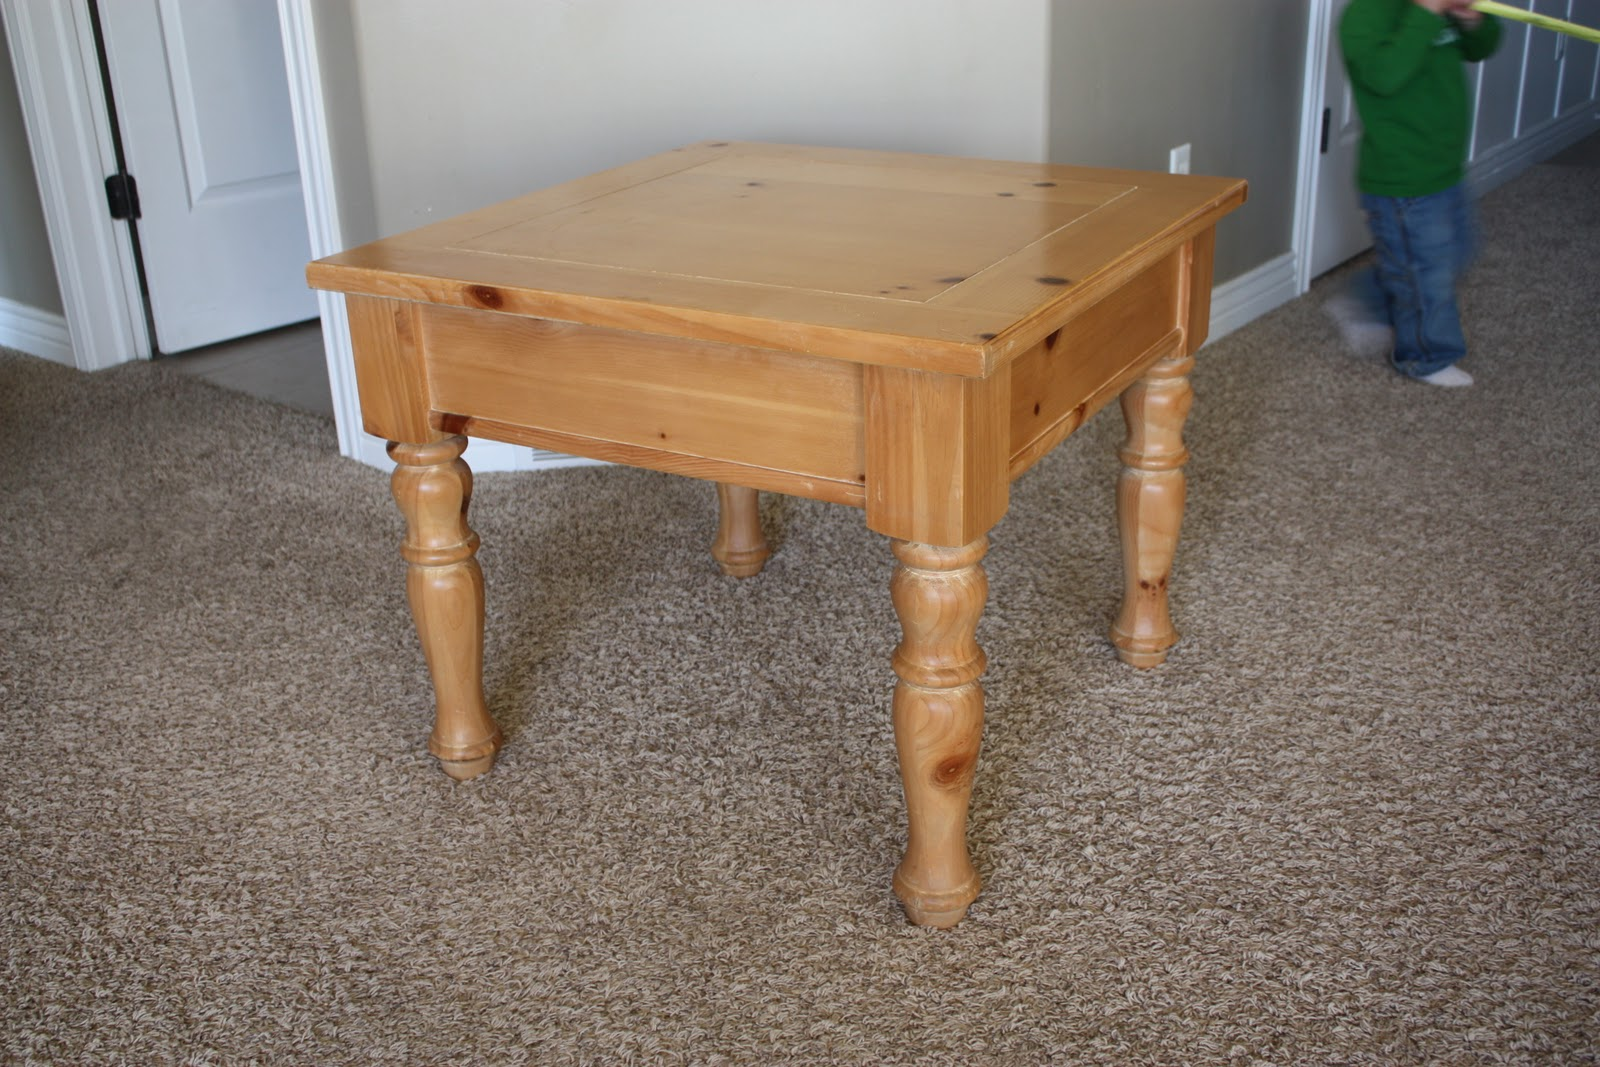 Country girl home small table bench legs add on for Short table legs